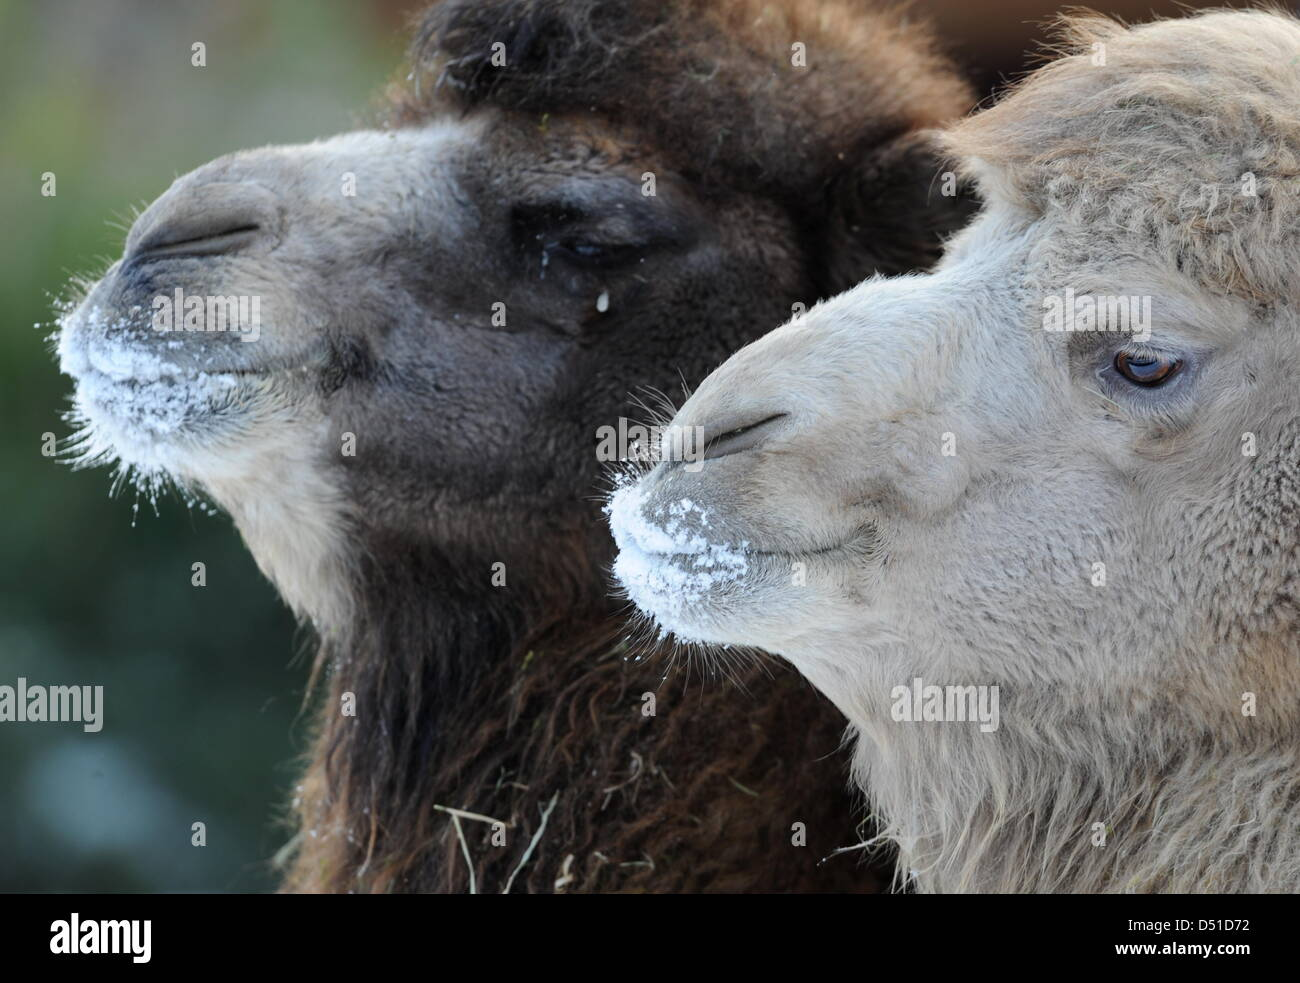 the mouths and noses of two bactrian camels are covered in snow at